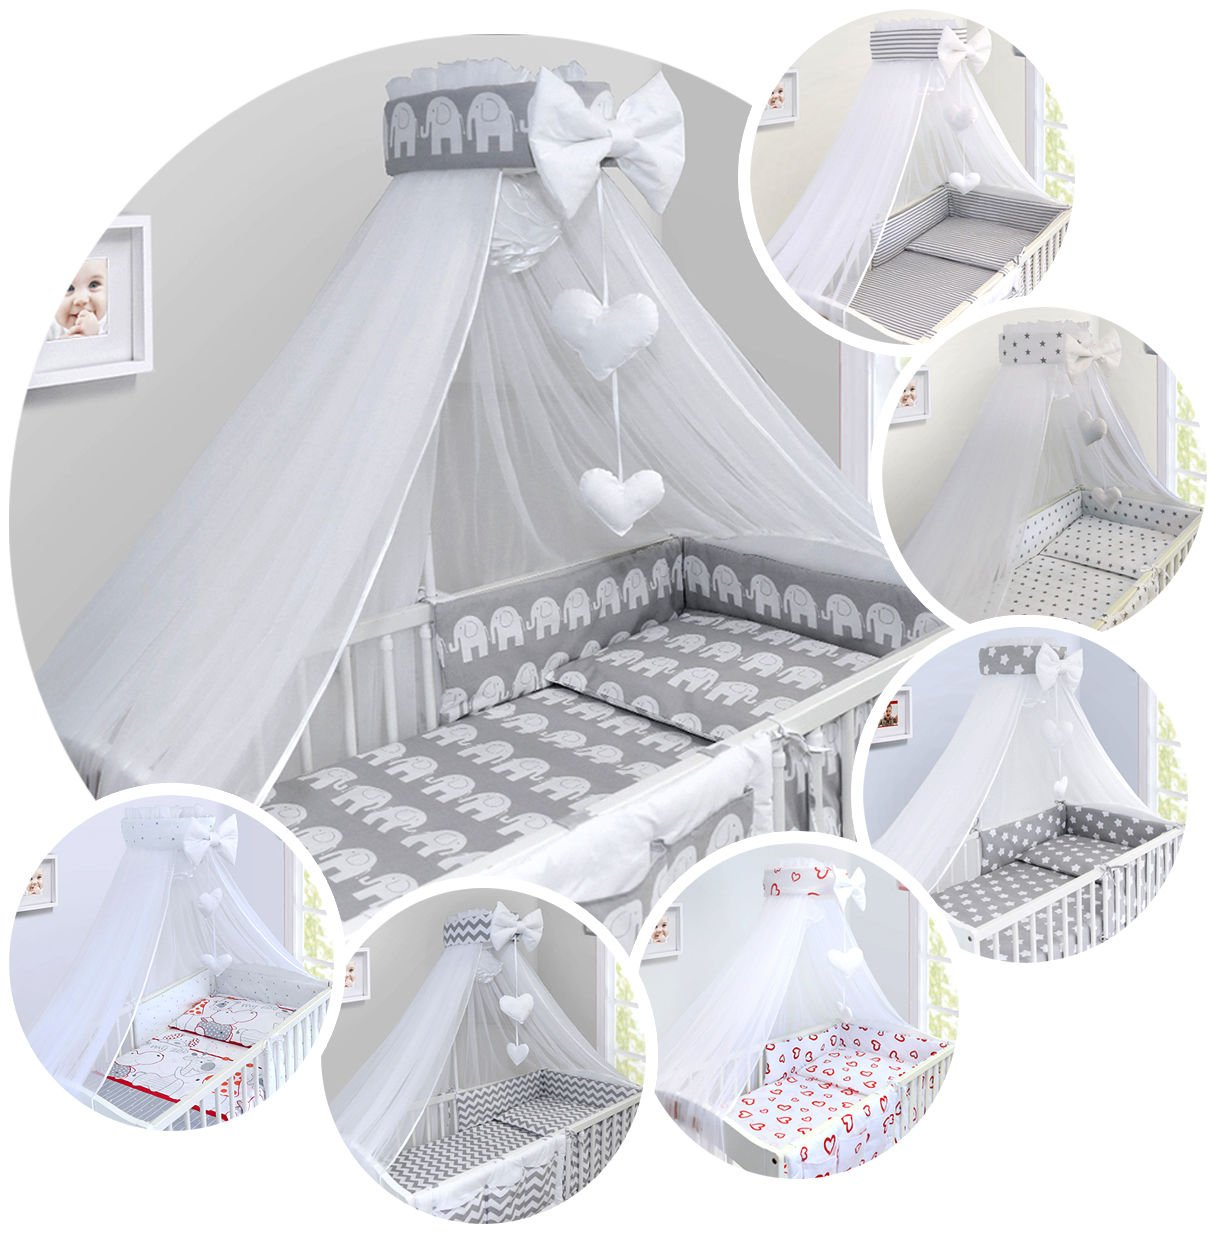 LUXURY 14Pcs BABY BEDDING SET COT BED 140x70cm PILLOW DUVET COVER BUMPER FEEDING PILLOW COT TIDY CHANGING MAT CANOPY (Elephants on Grey Background) TheLittles24